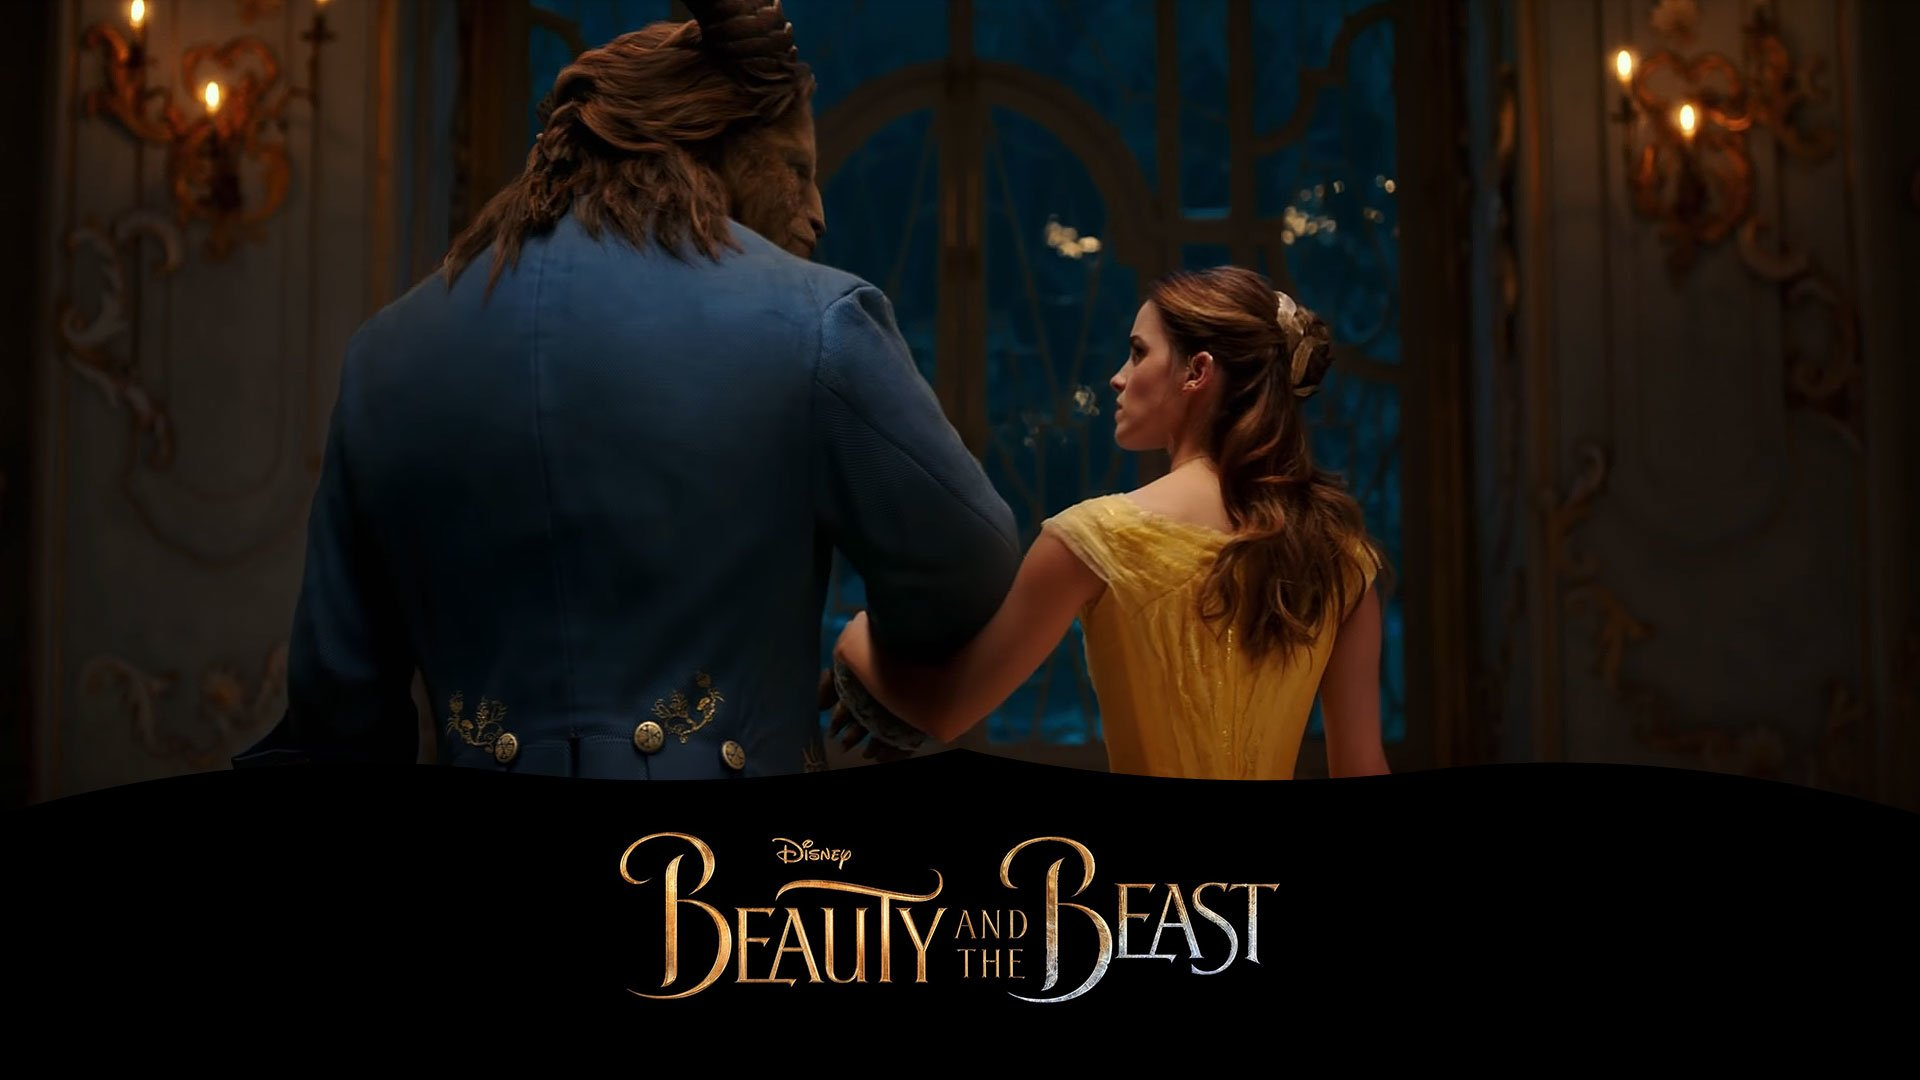 Beauty And The Beast 2017 Hd Wallpaper Background Image